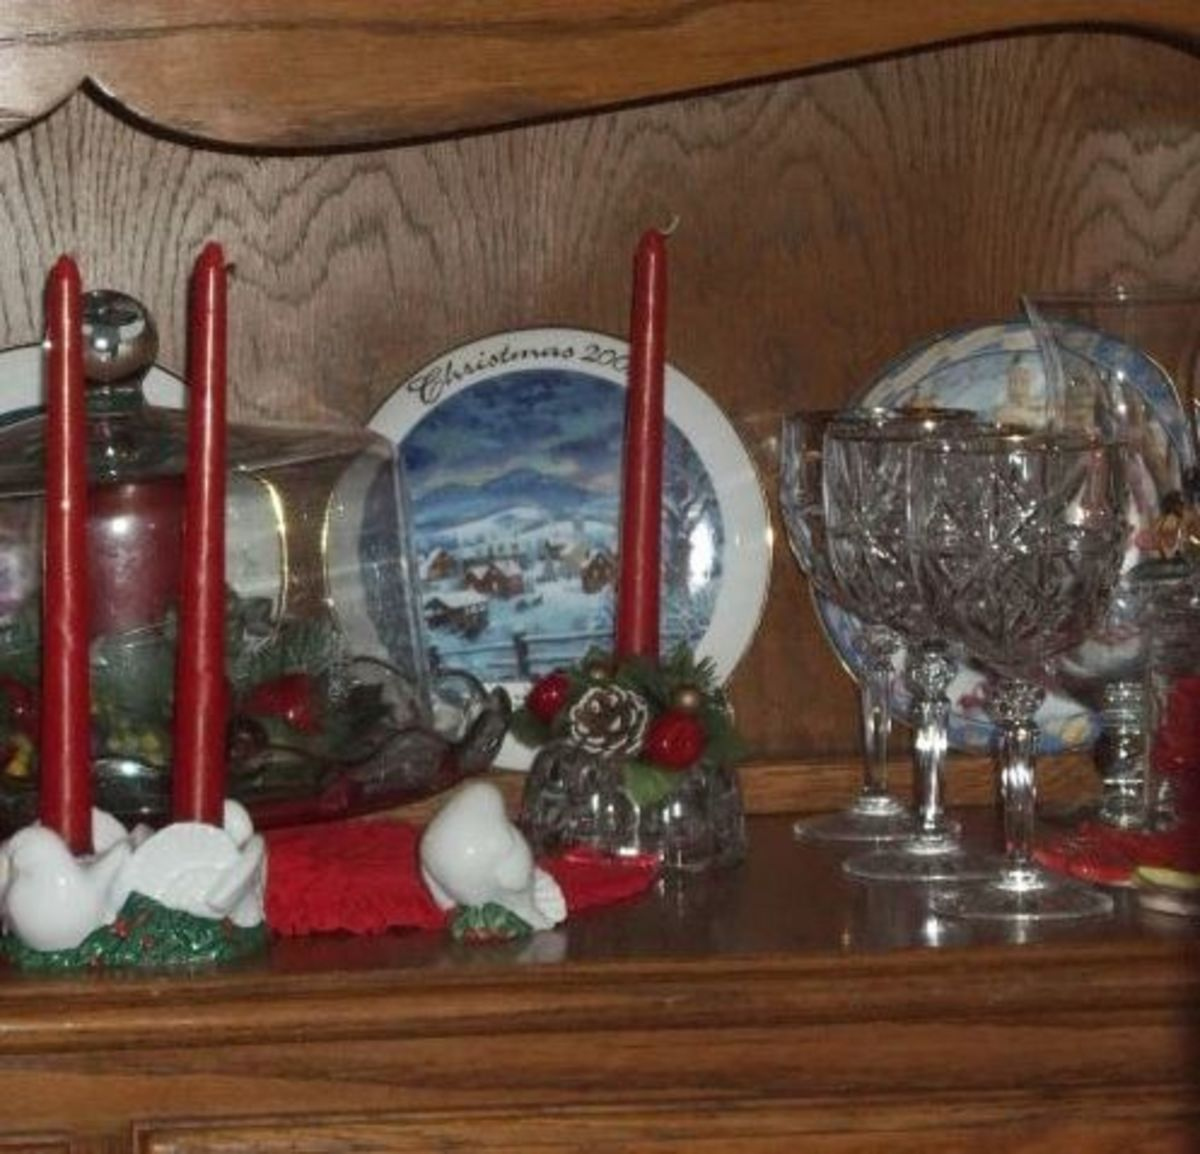 Use what you have. Decorate inside a cake dish and set out your best goblets for decorations.  My sister used lots of clear glass, antique family candle holders and gold throughout the house for this Christmas at home theme.